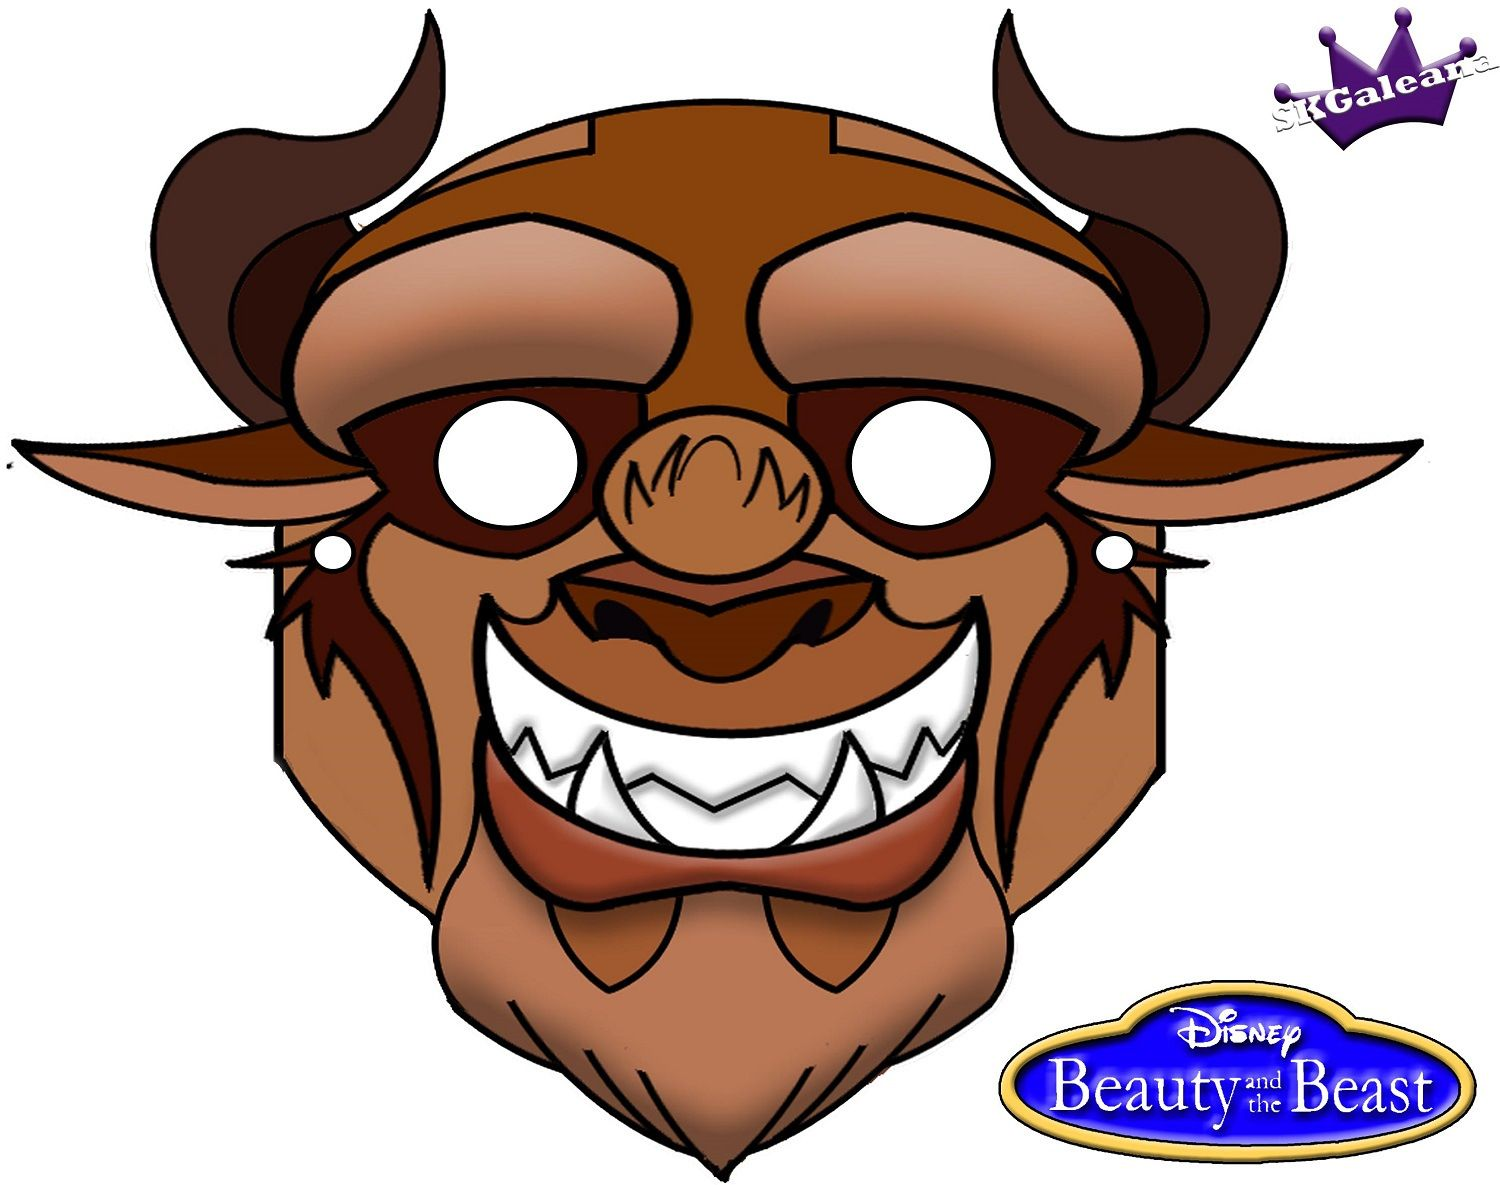 Beast From Disney Beauty And The Beast Free Printable Mask (super Creepy,  But Good Face Reference!  Free Printable Face Masks